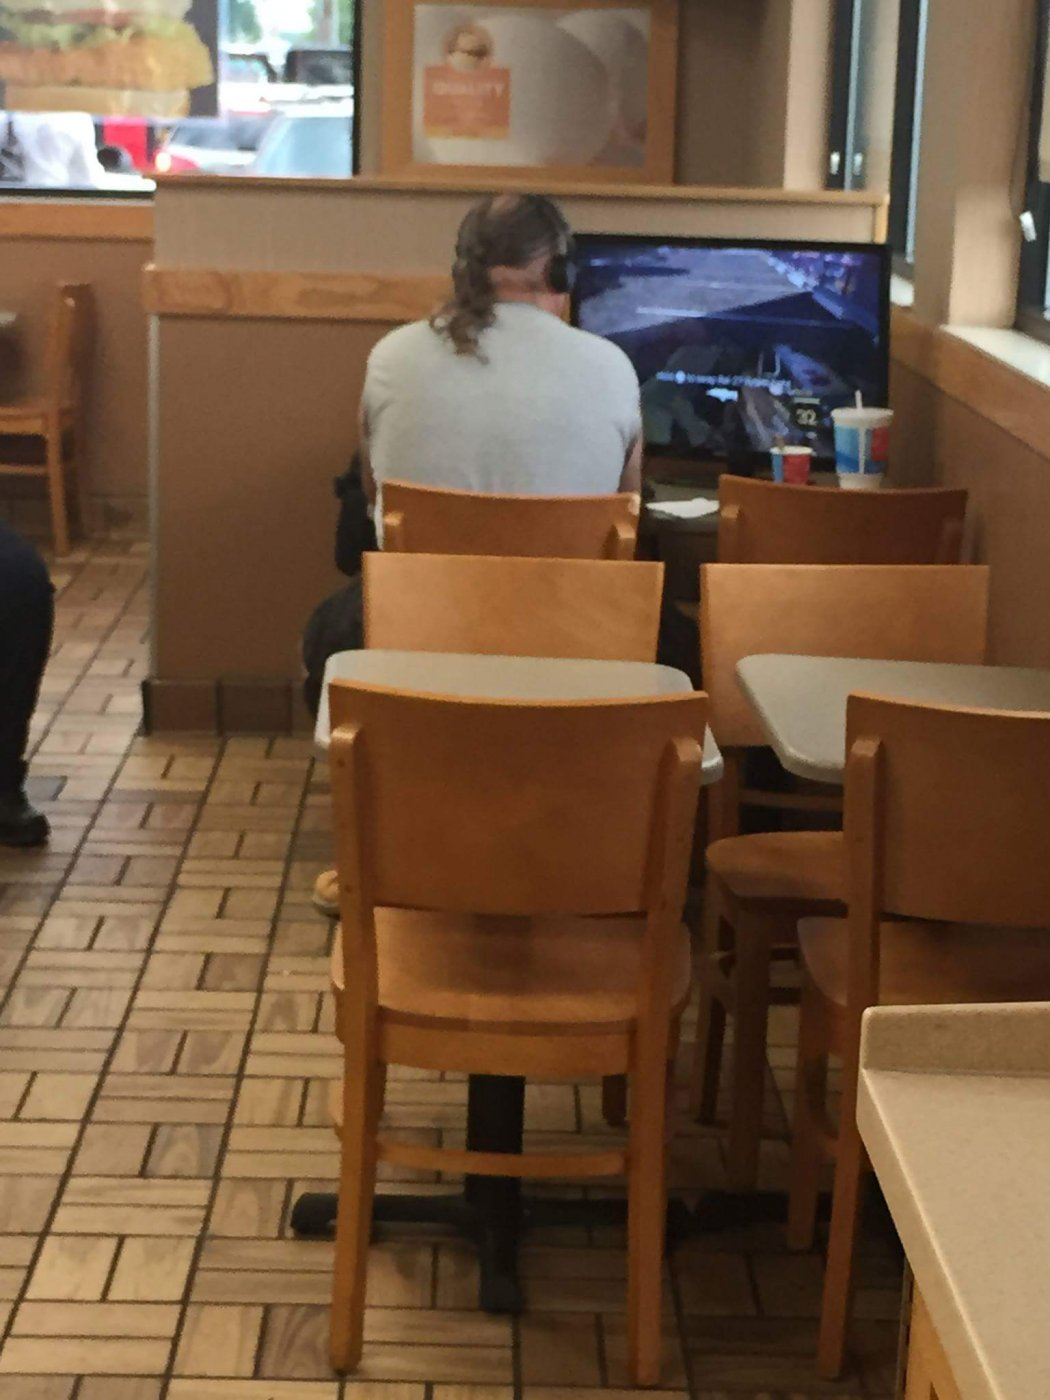 Fast food and fast internet connection?